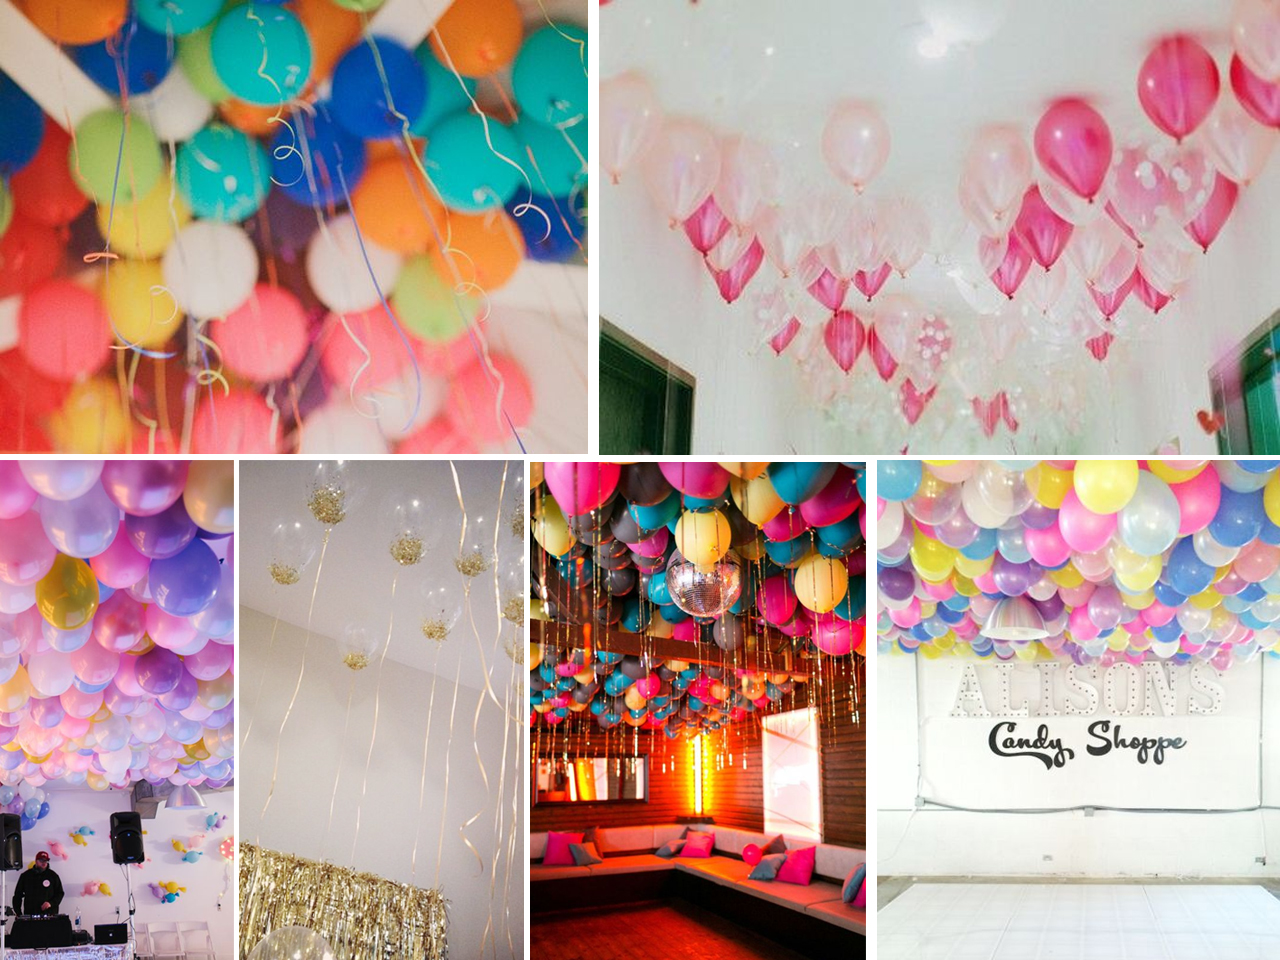 Descubre c mo decorar con globos con estas fant sticas ideas - Decoraciones para la pared ...